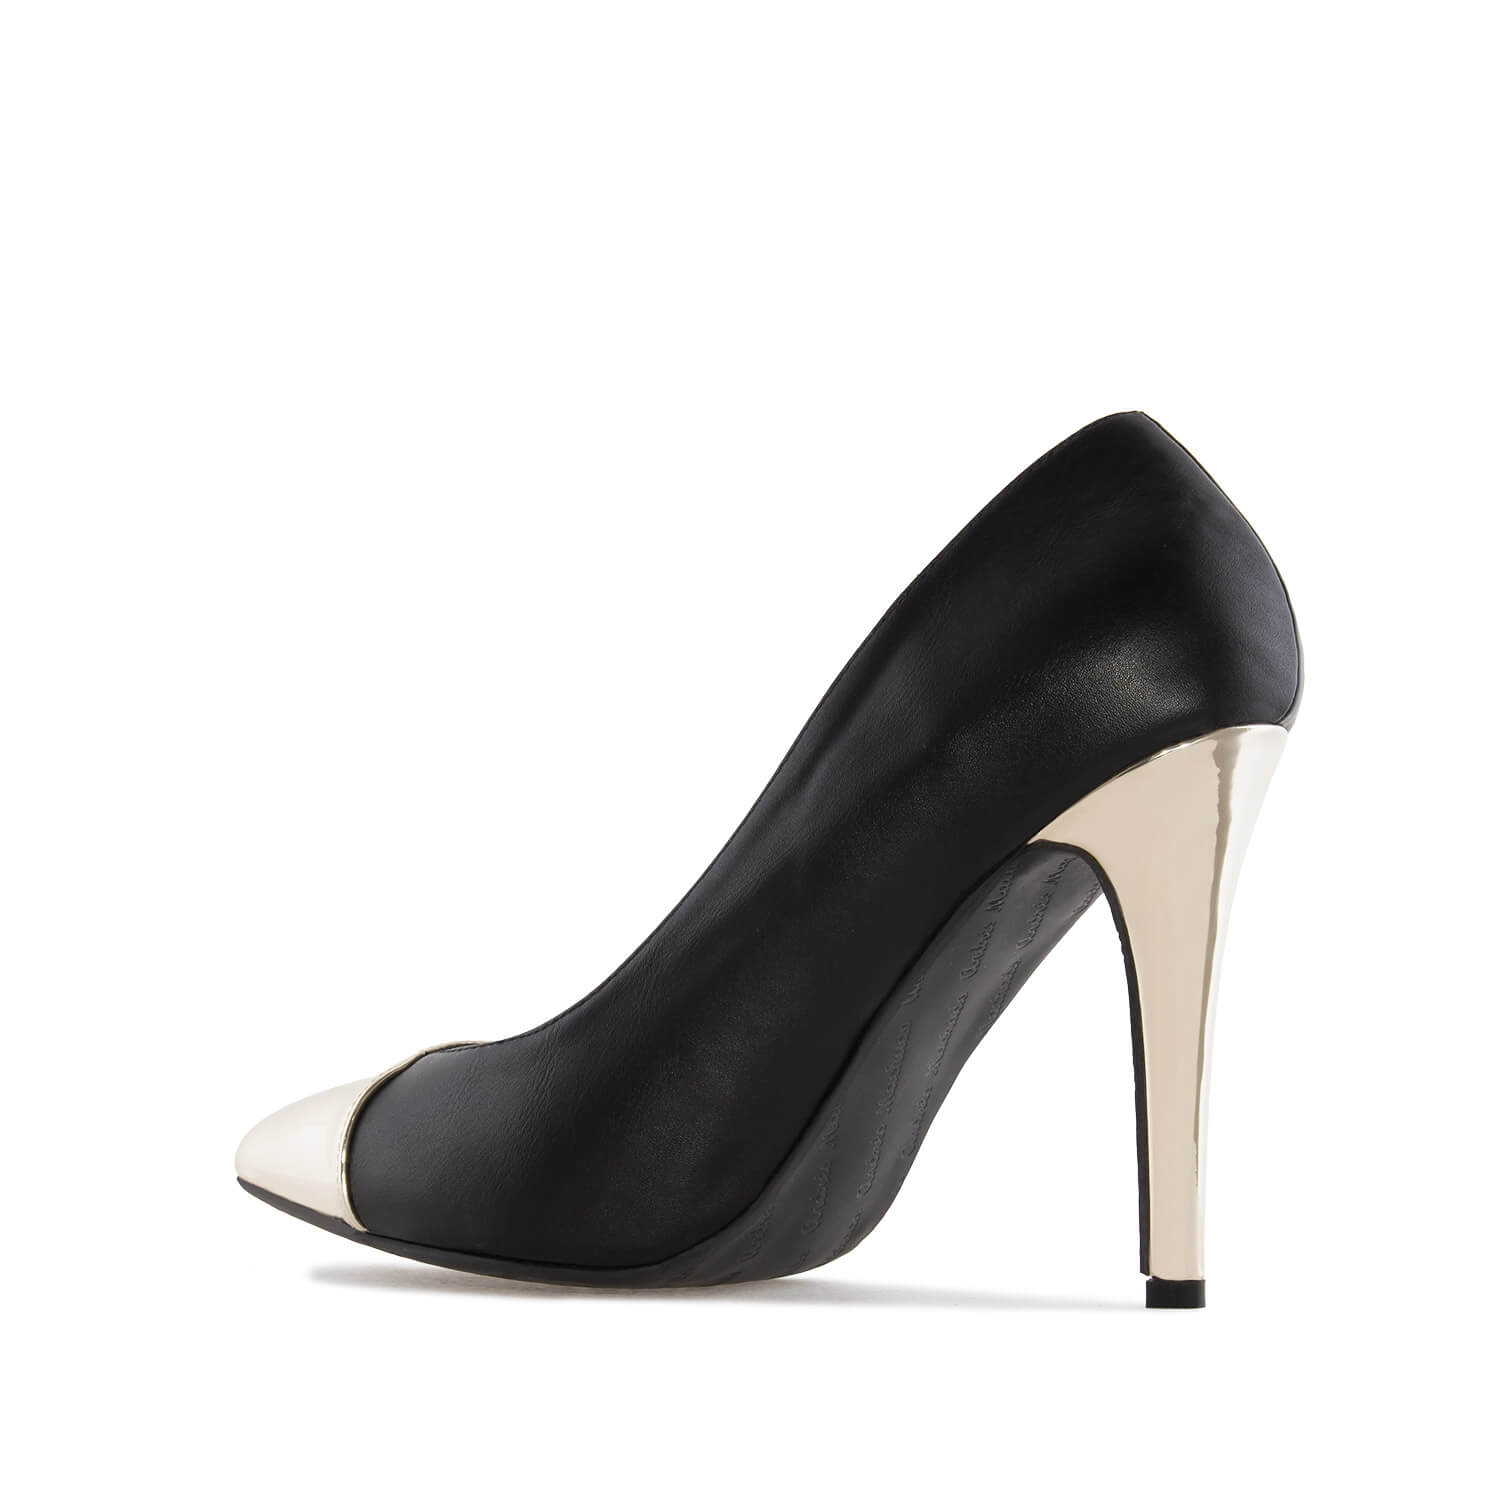 Pumps in Black faux Leather with Gold Patent Tip & Heel